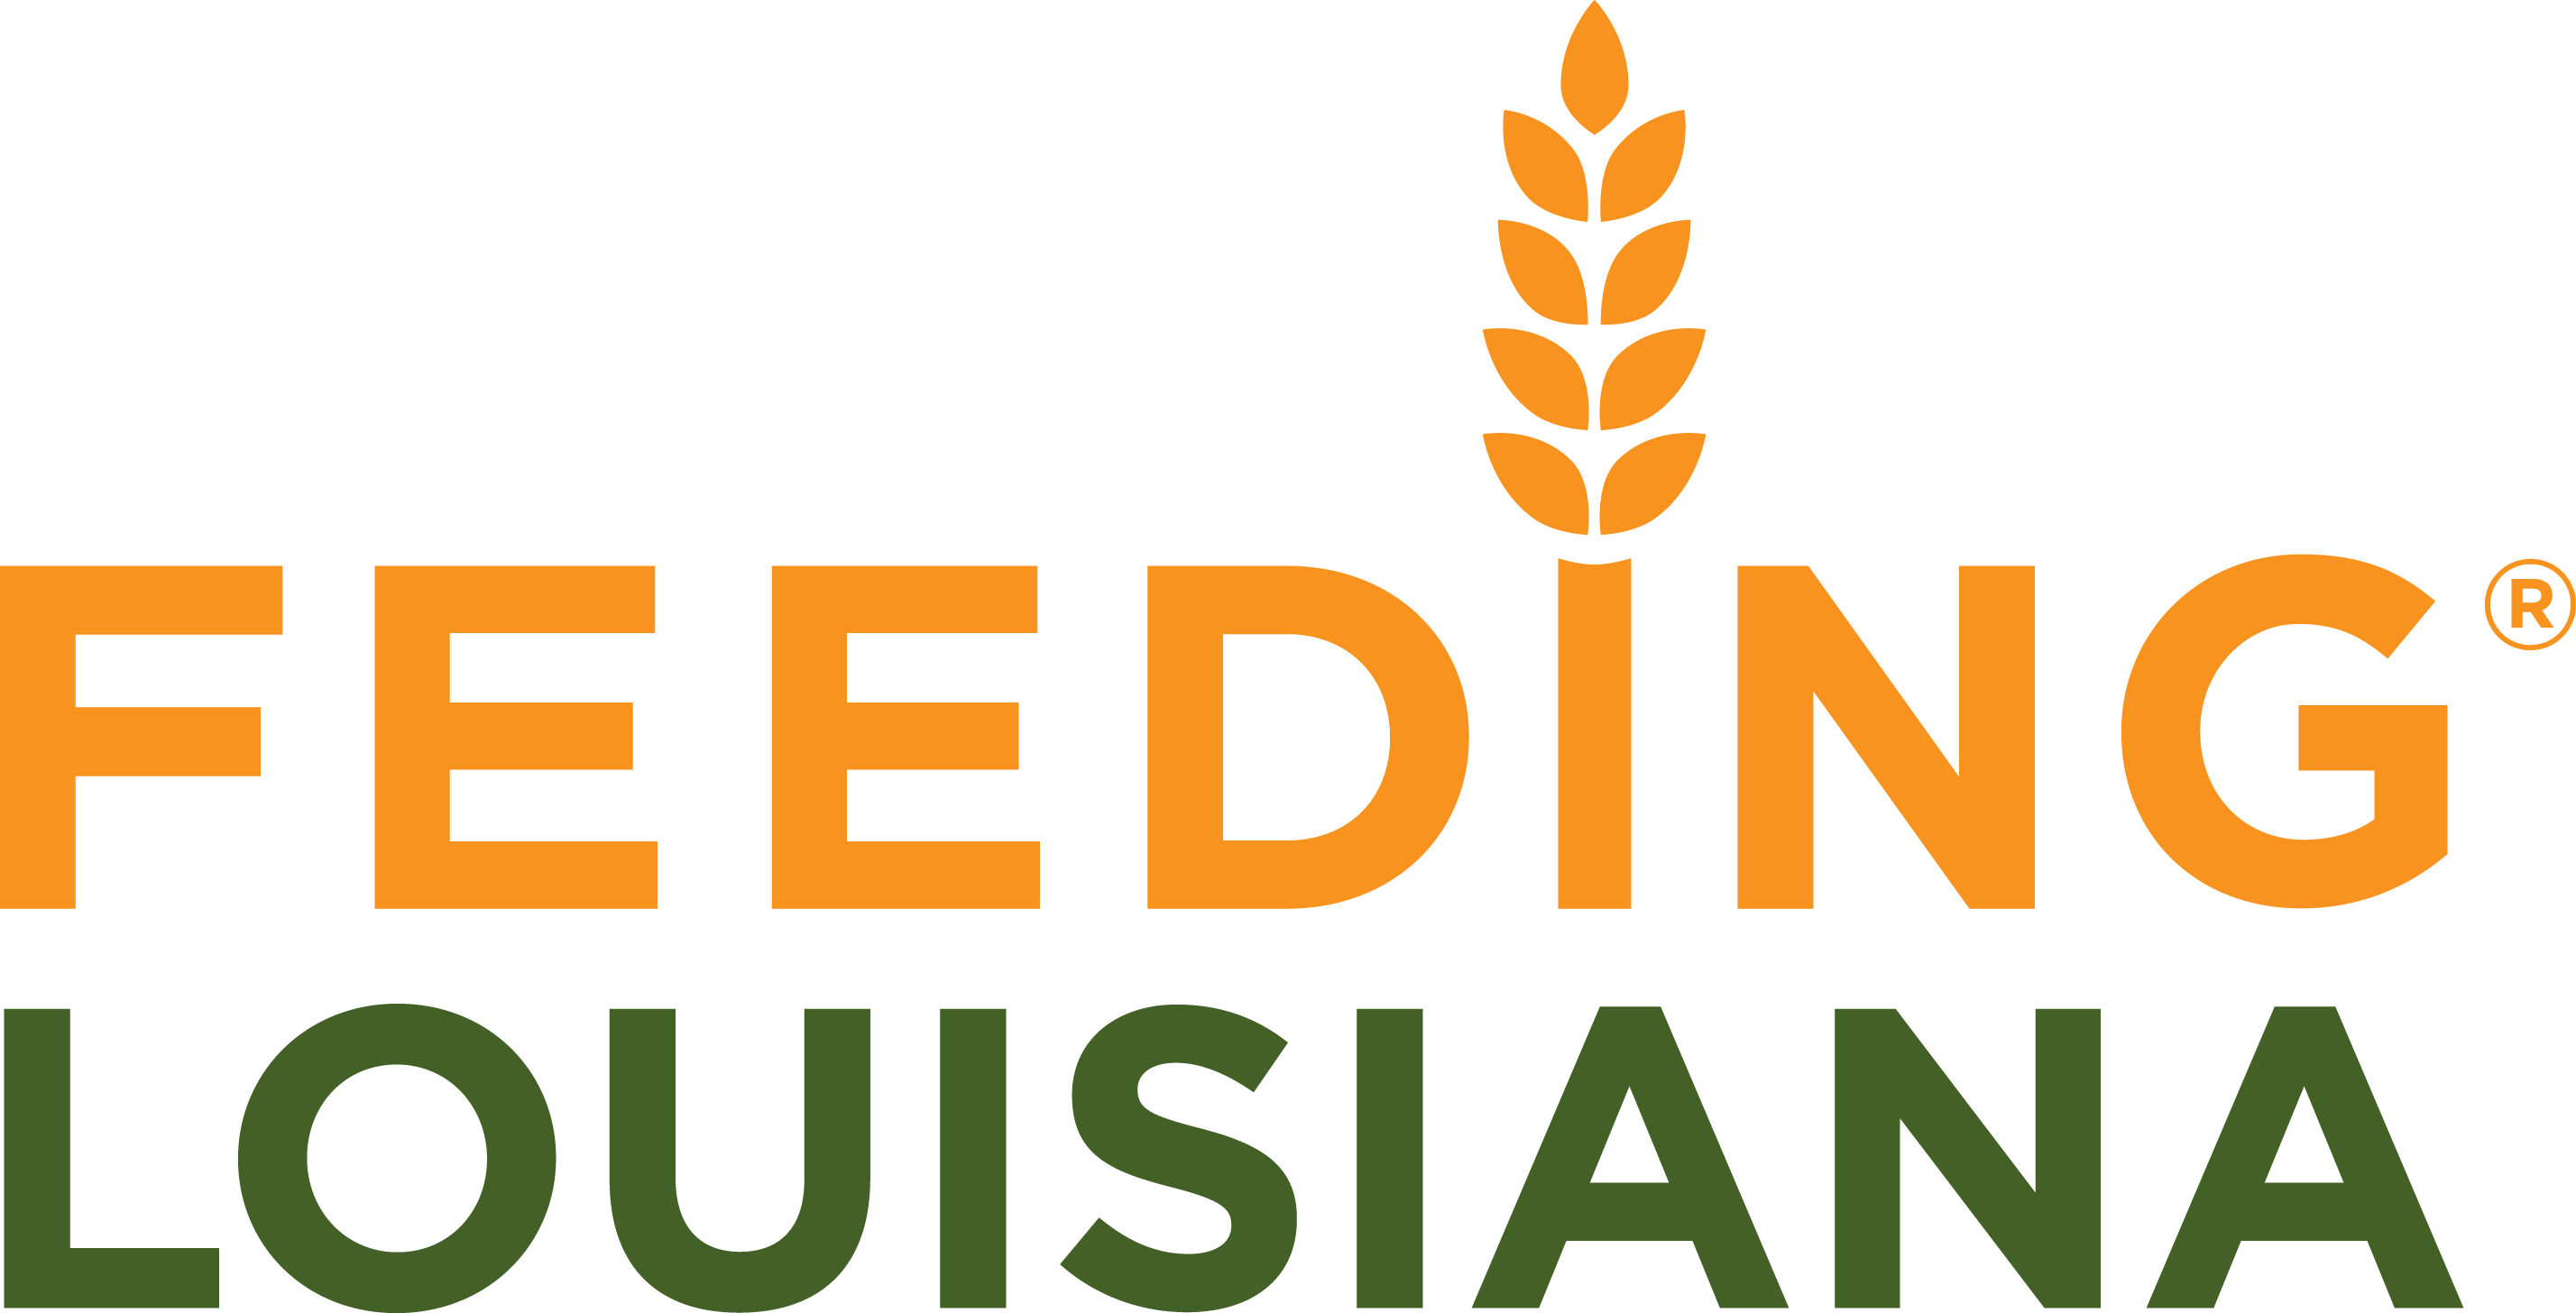 Feed Louisiana